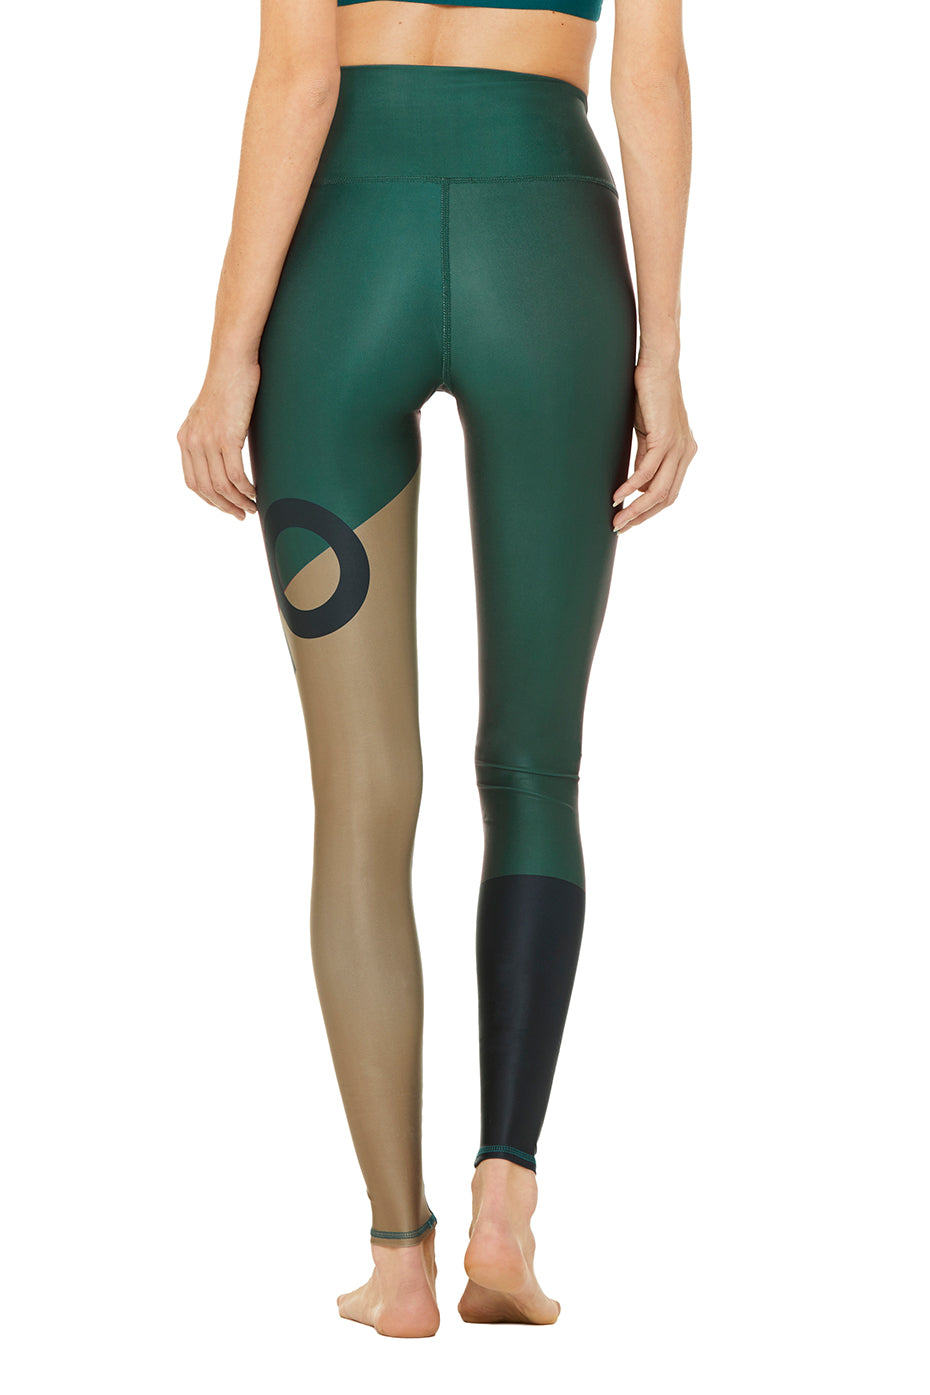 High-Waist Airlift Legging - ALO Graphic